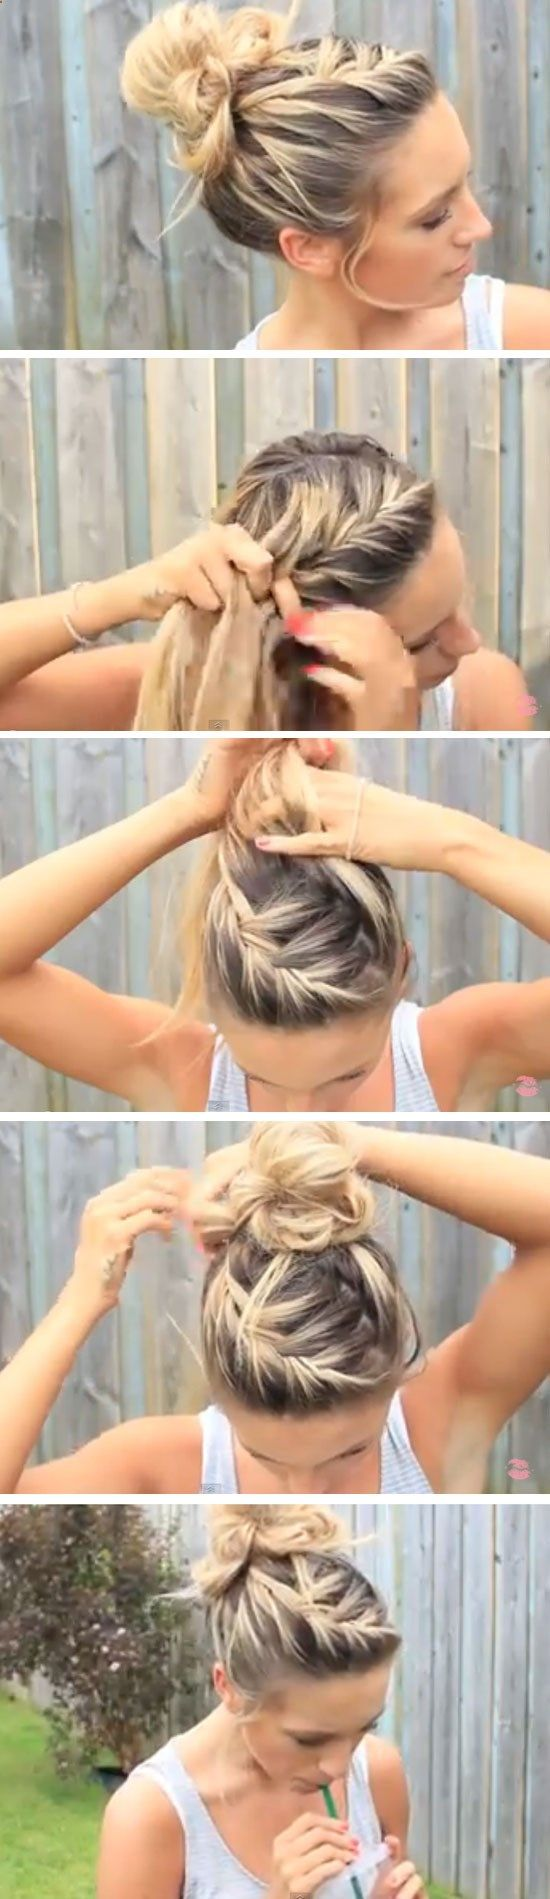 Double side haircut for boys easy diy hairstyles for the beach  messy bun  best skin care from